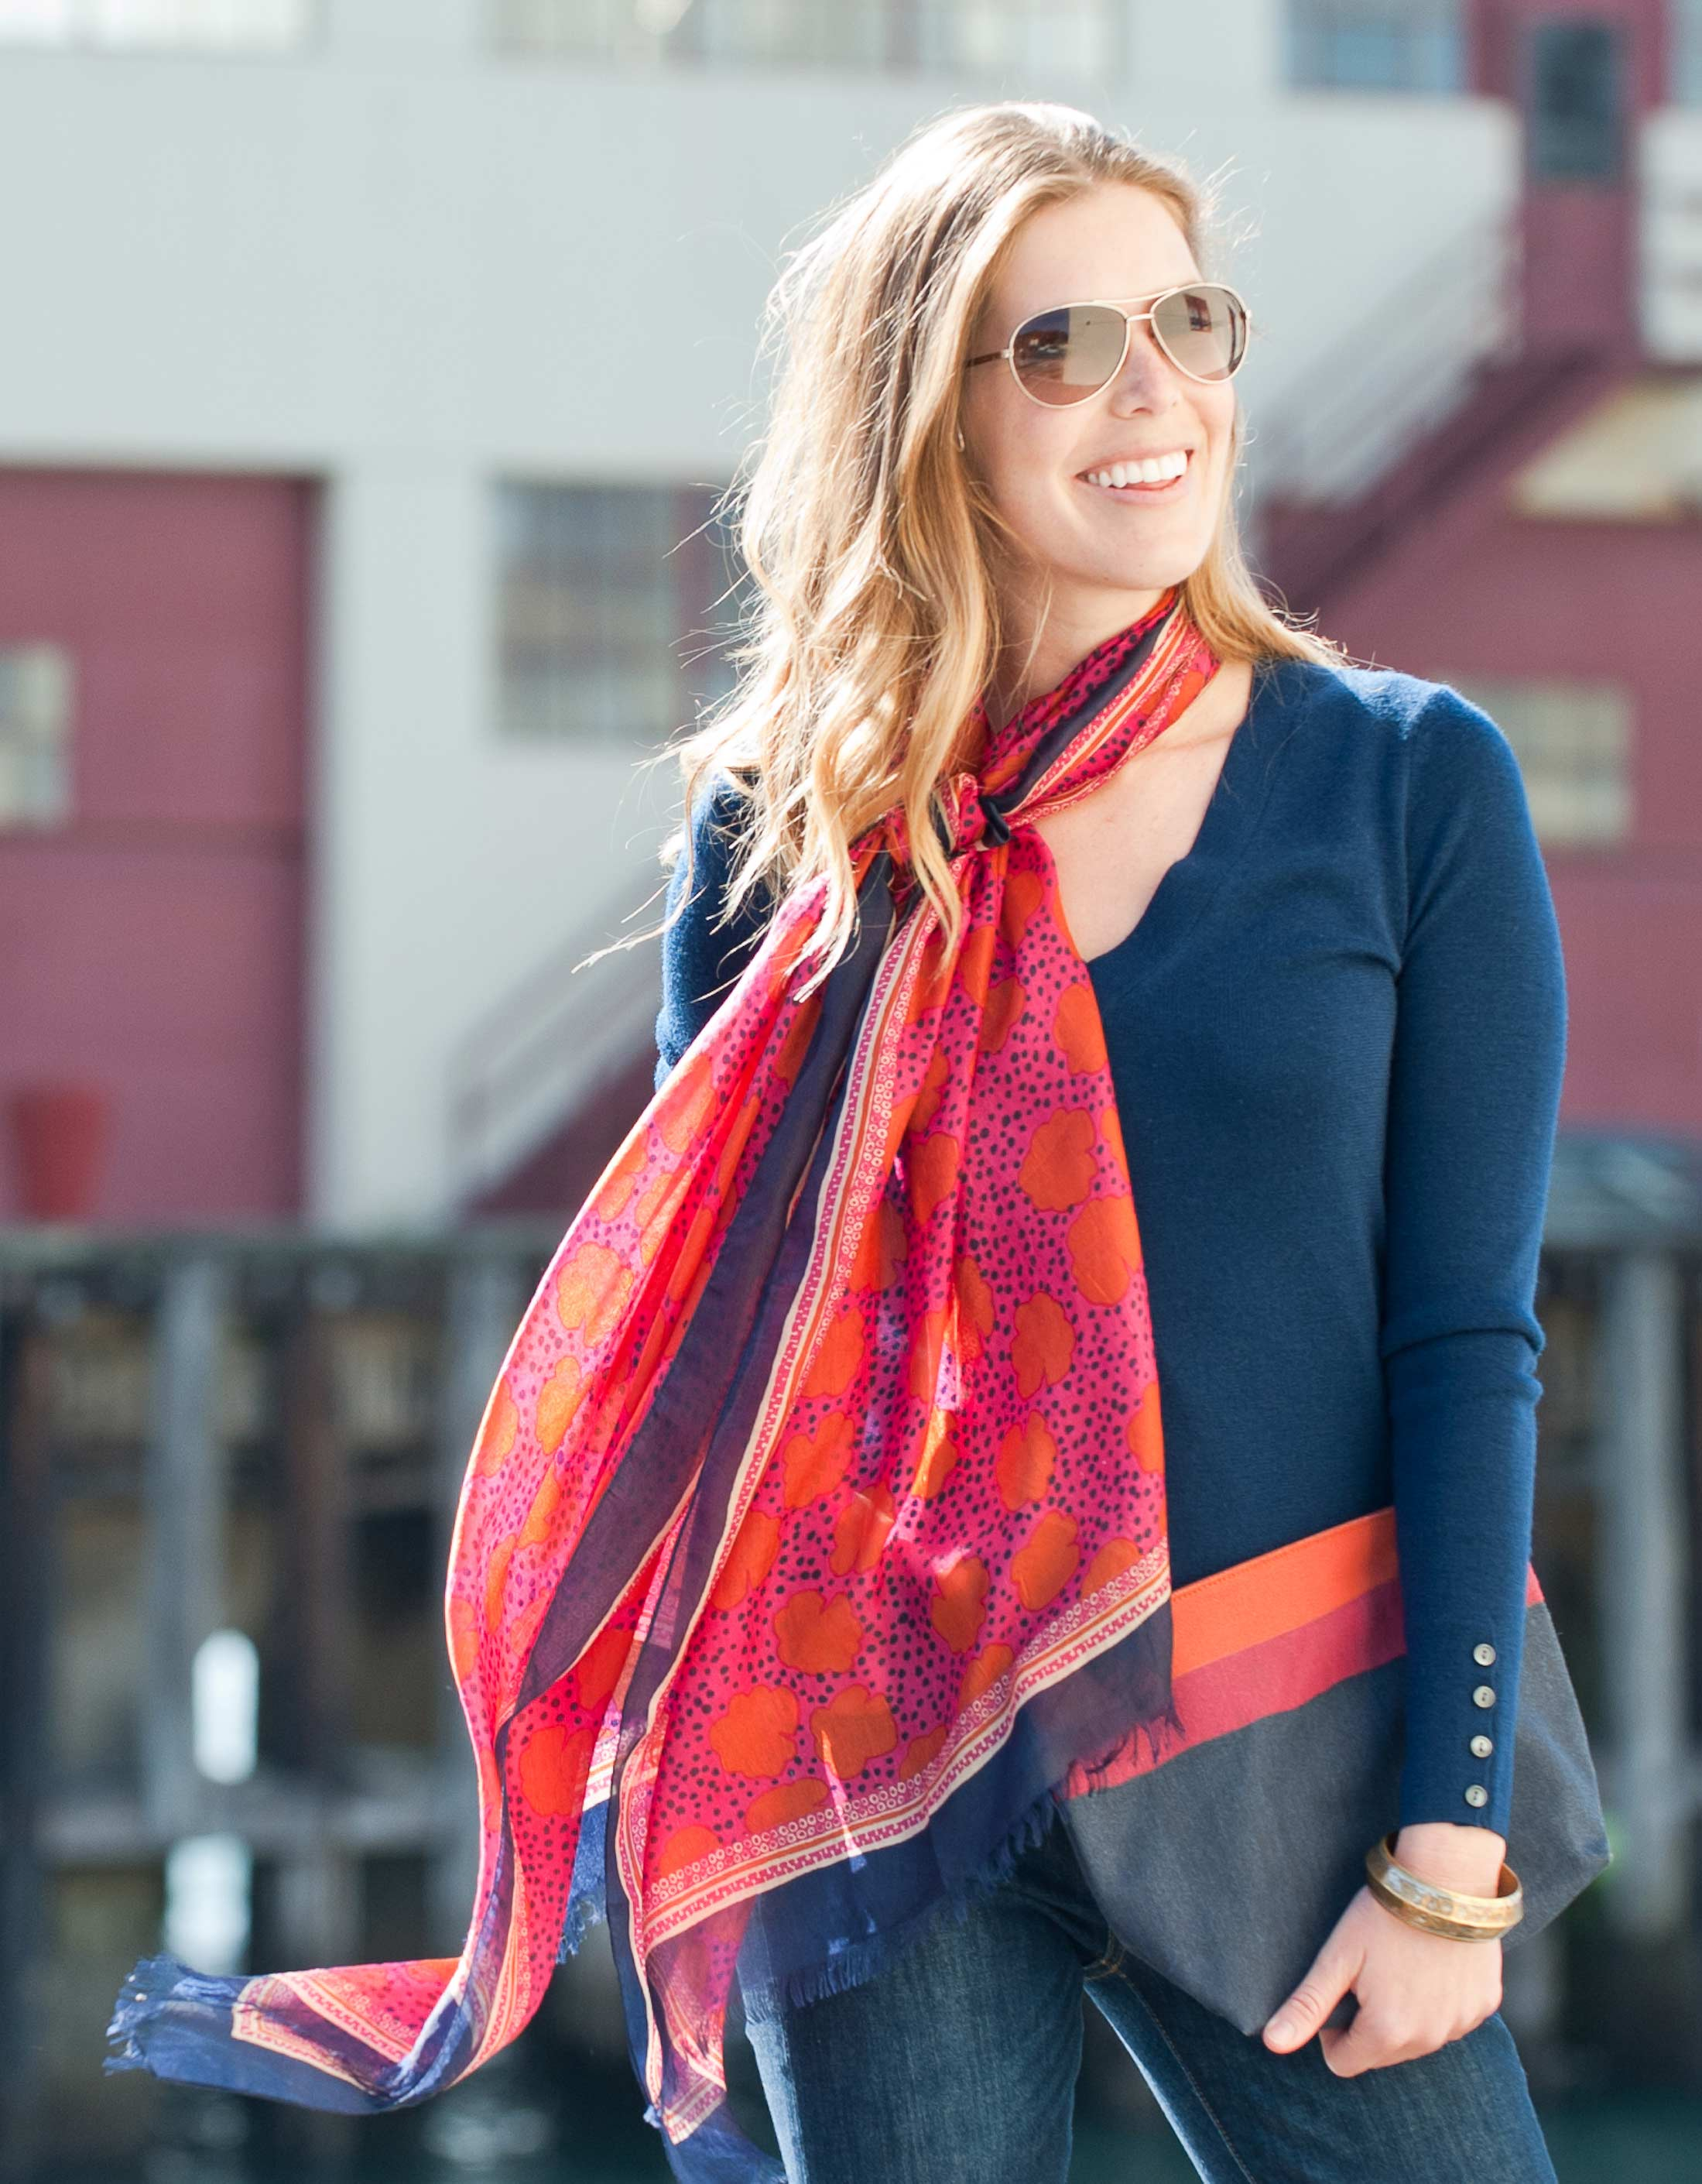 woman wearing navy sweater and red floral print silk scarf